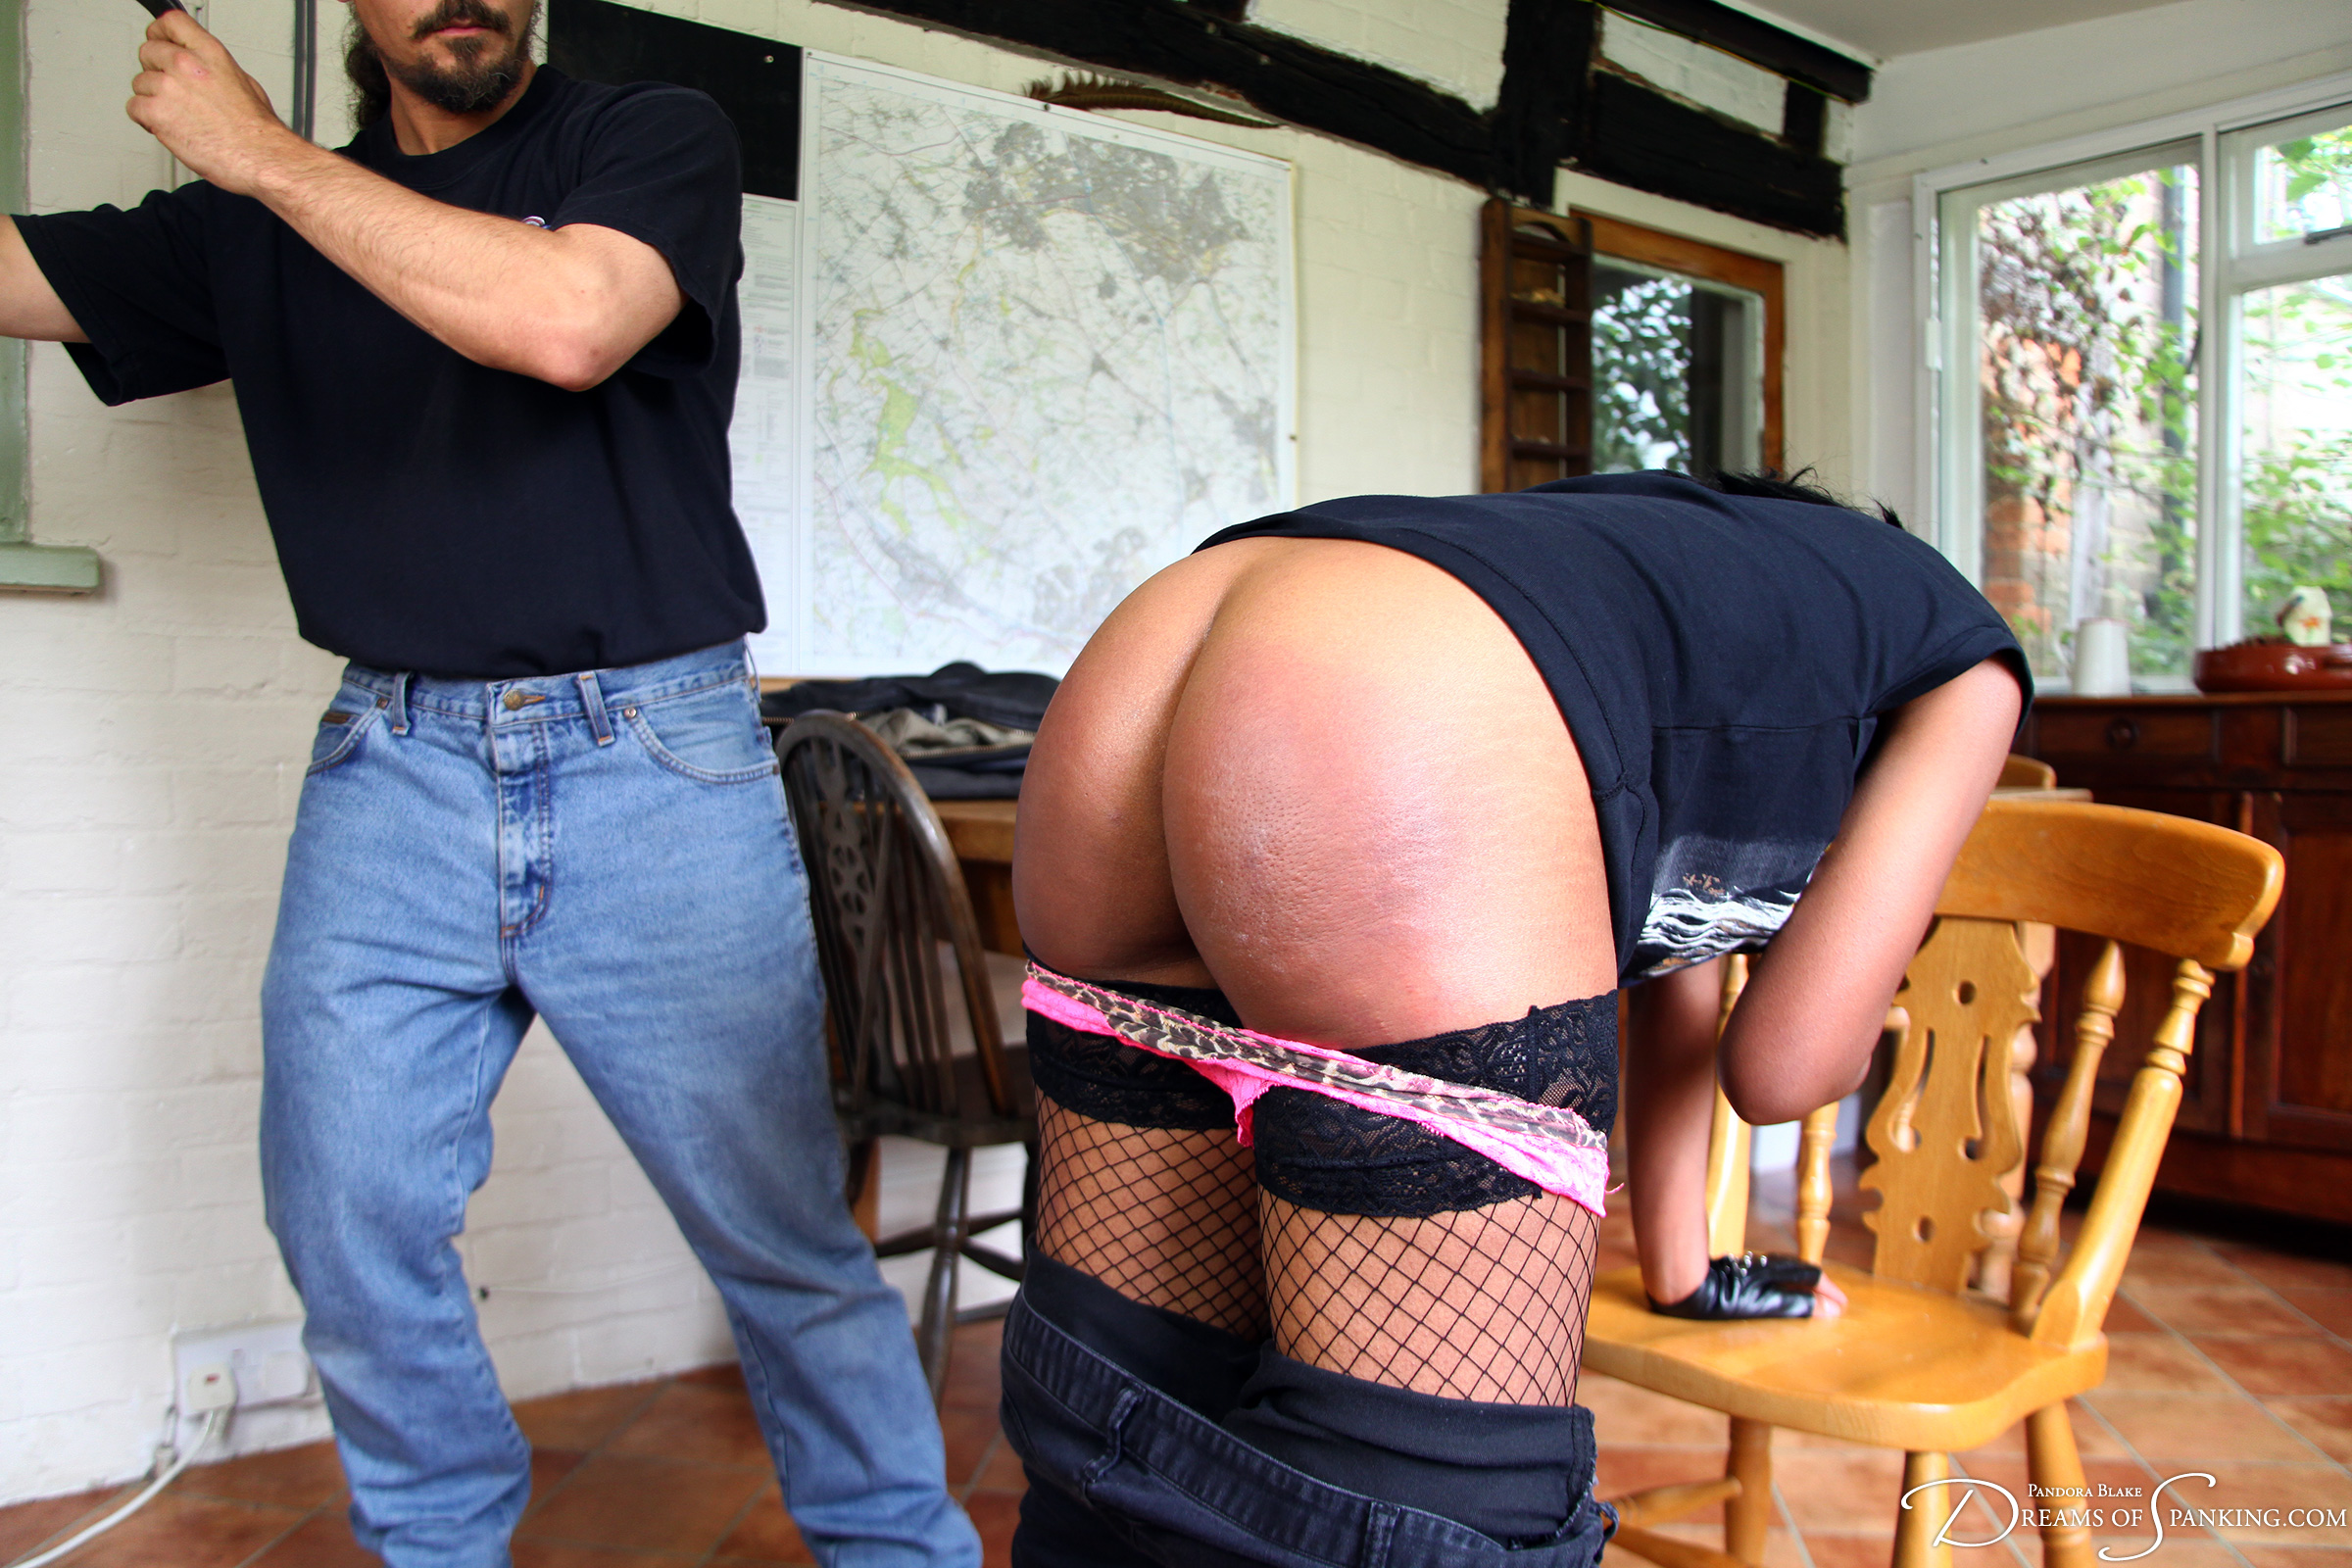 Girls spanked with belt